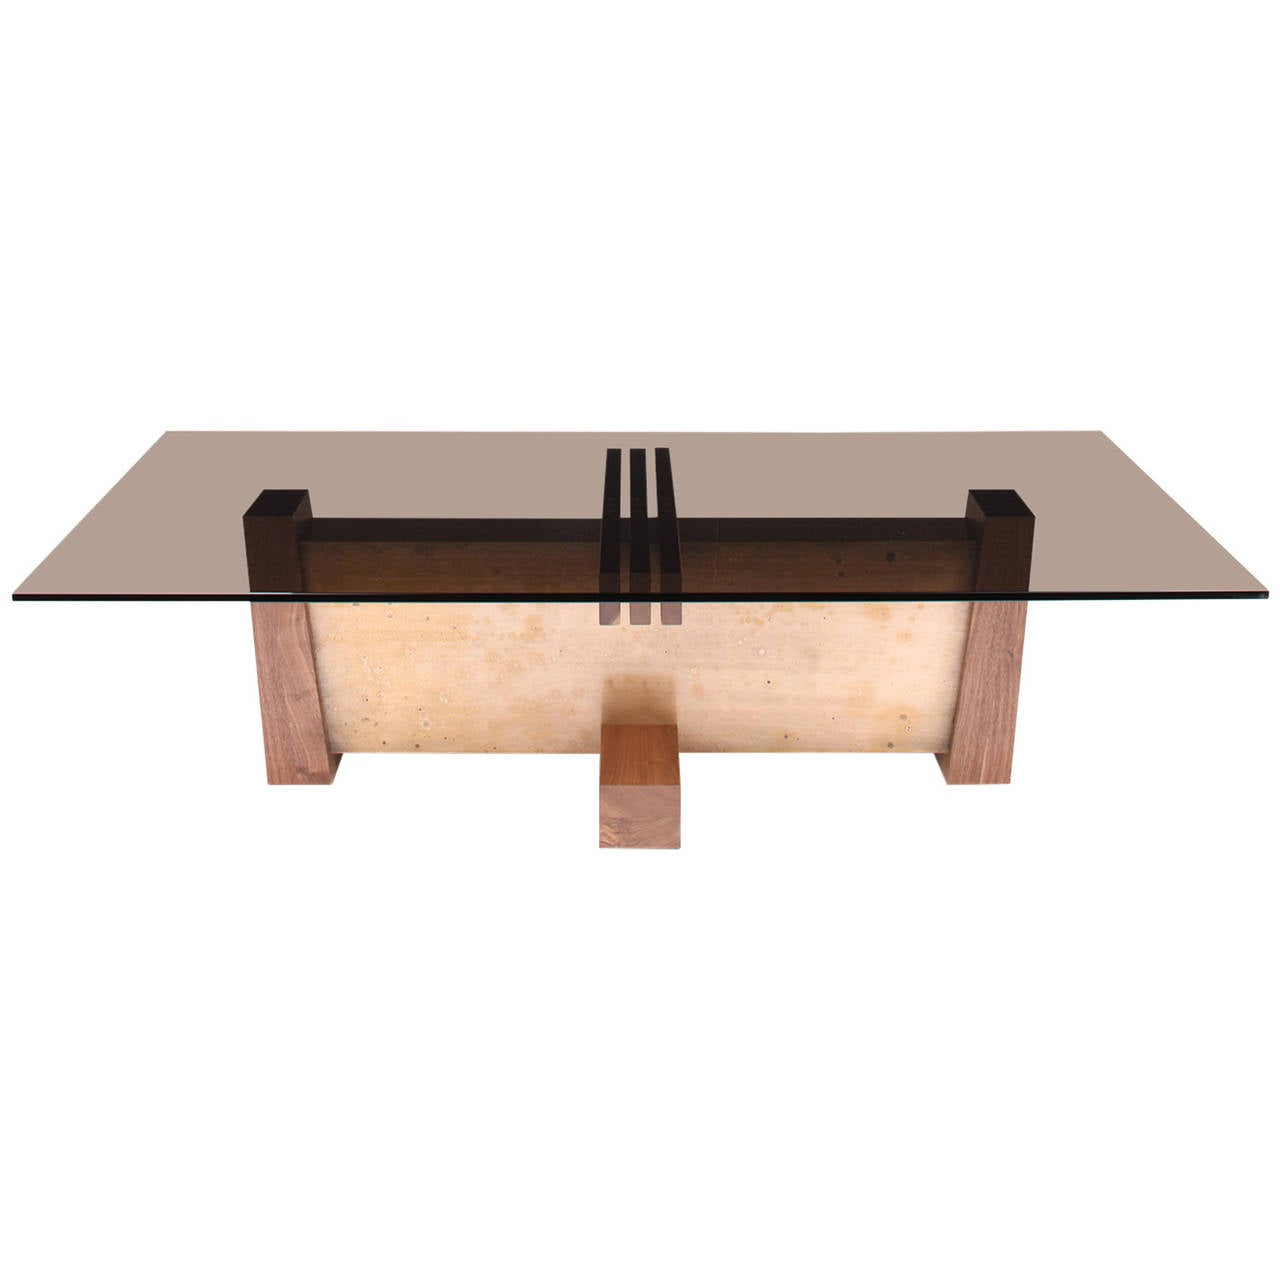 Flw Coffee Table In Smoked Glass Walnut And Etched Bronze By Studio Roeper For Sale At 1stdibs